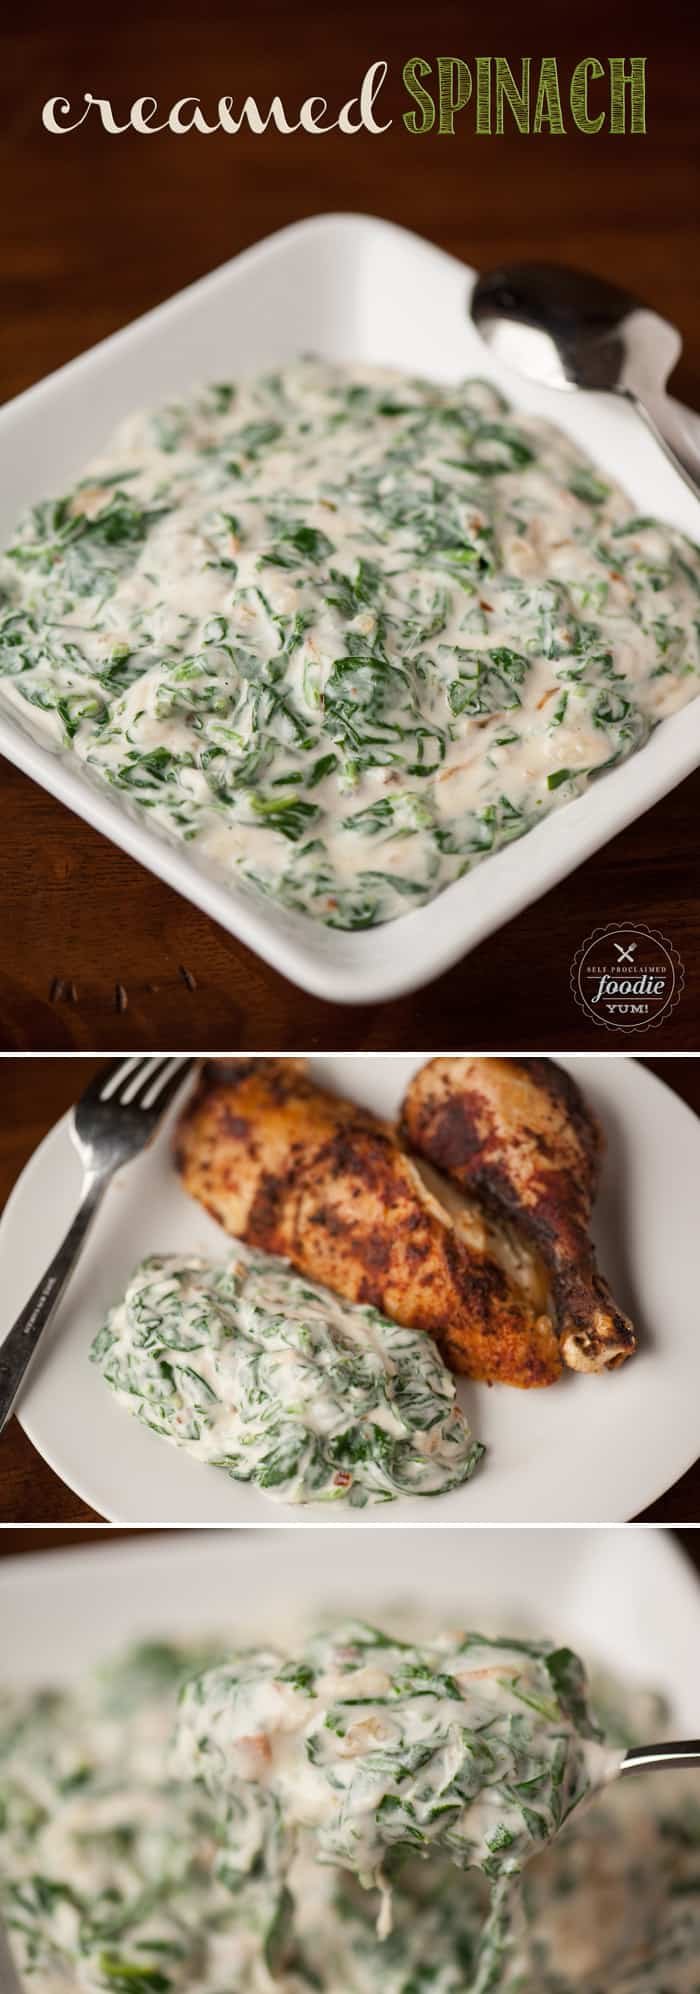 This Creamed Spinach is a decadent and rich side dish that combines fresh spinach with a creamy sauce and is the perfect addition to a romantic dinner.